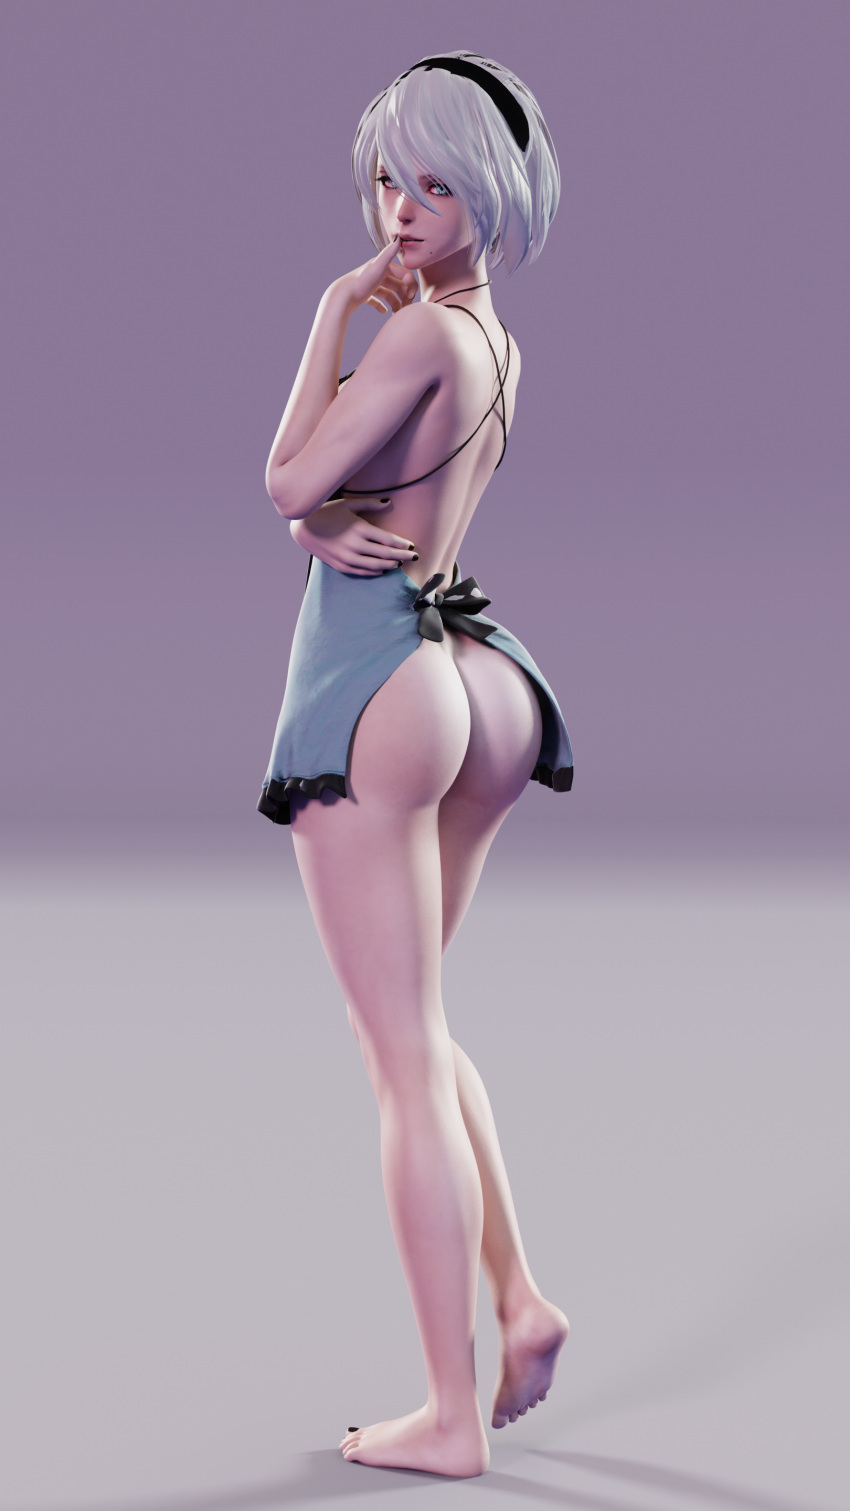 automata skirt nier back get Where is syanna after blood and wine